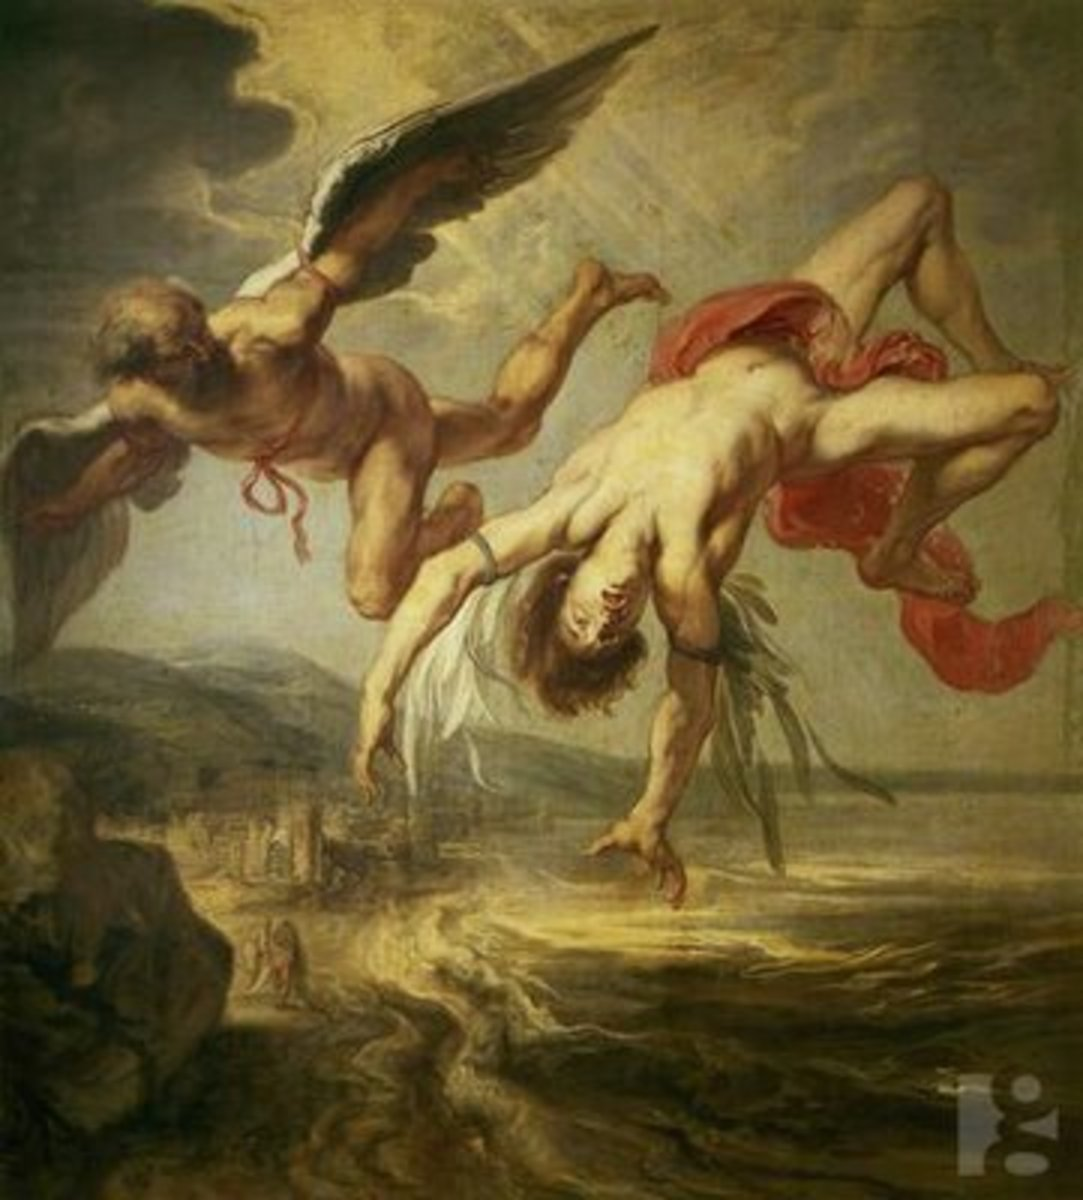 Like Icarus, Faustus flew too close to forbidden realms.